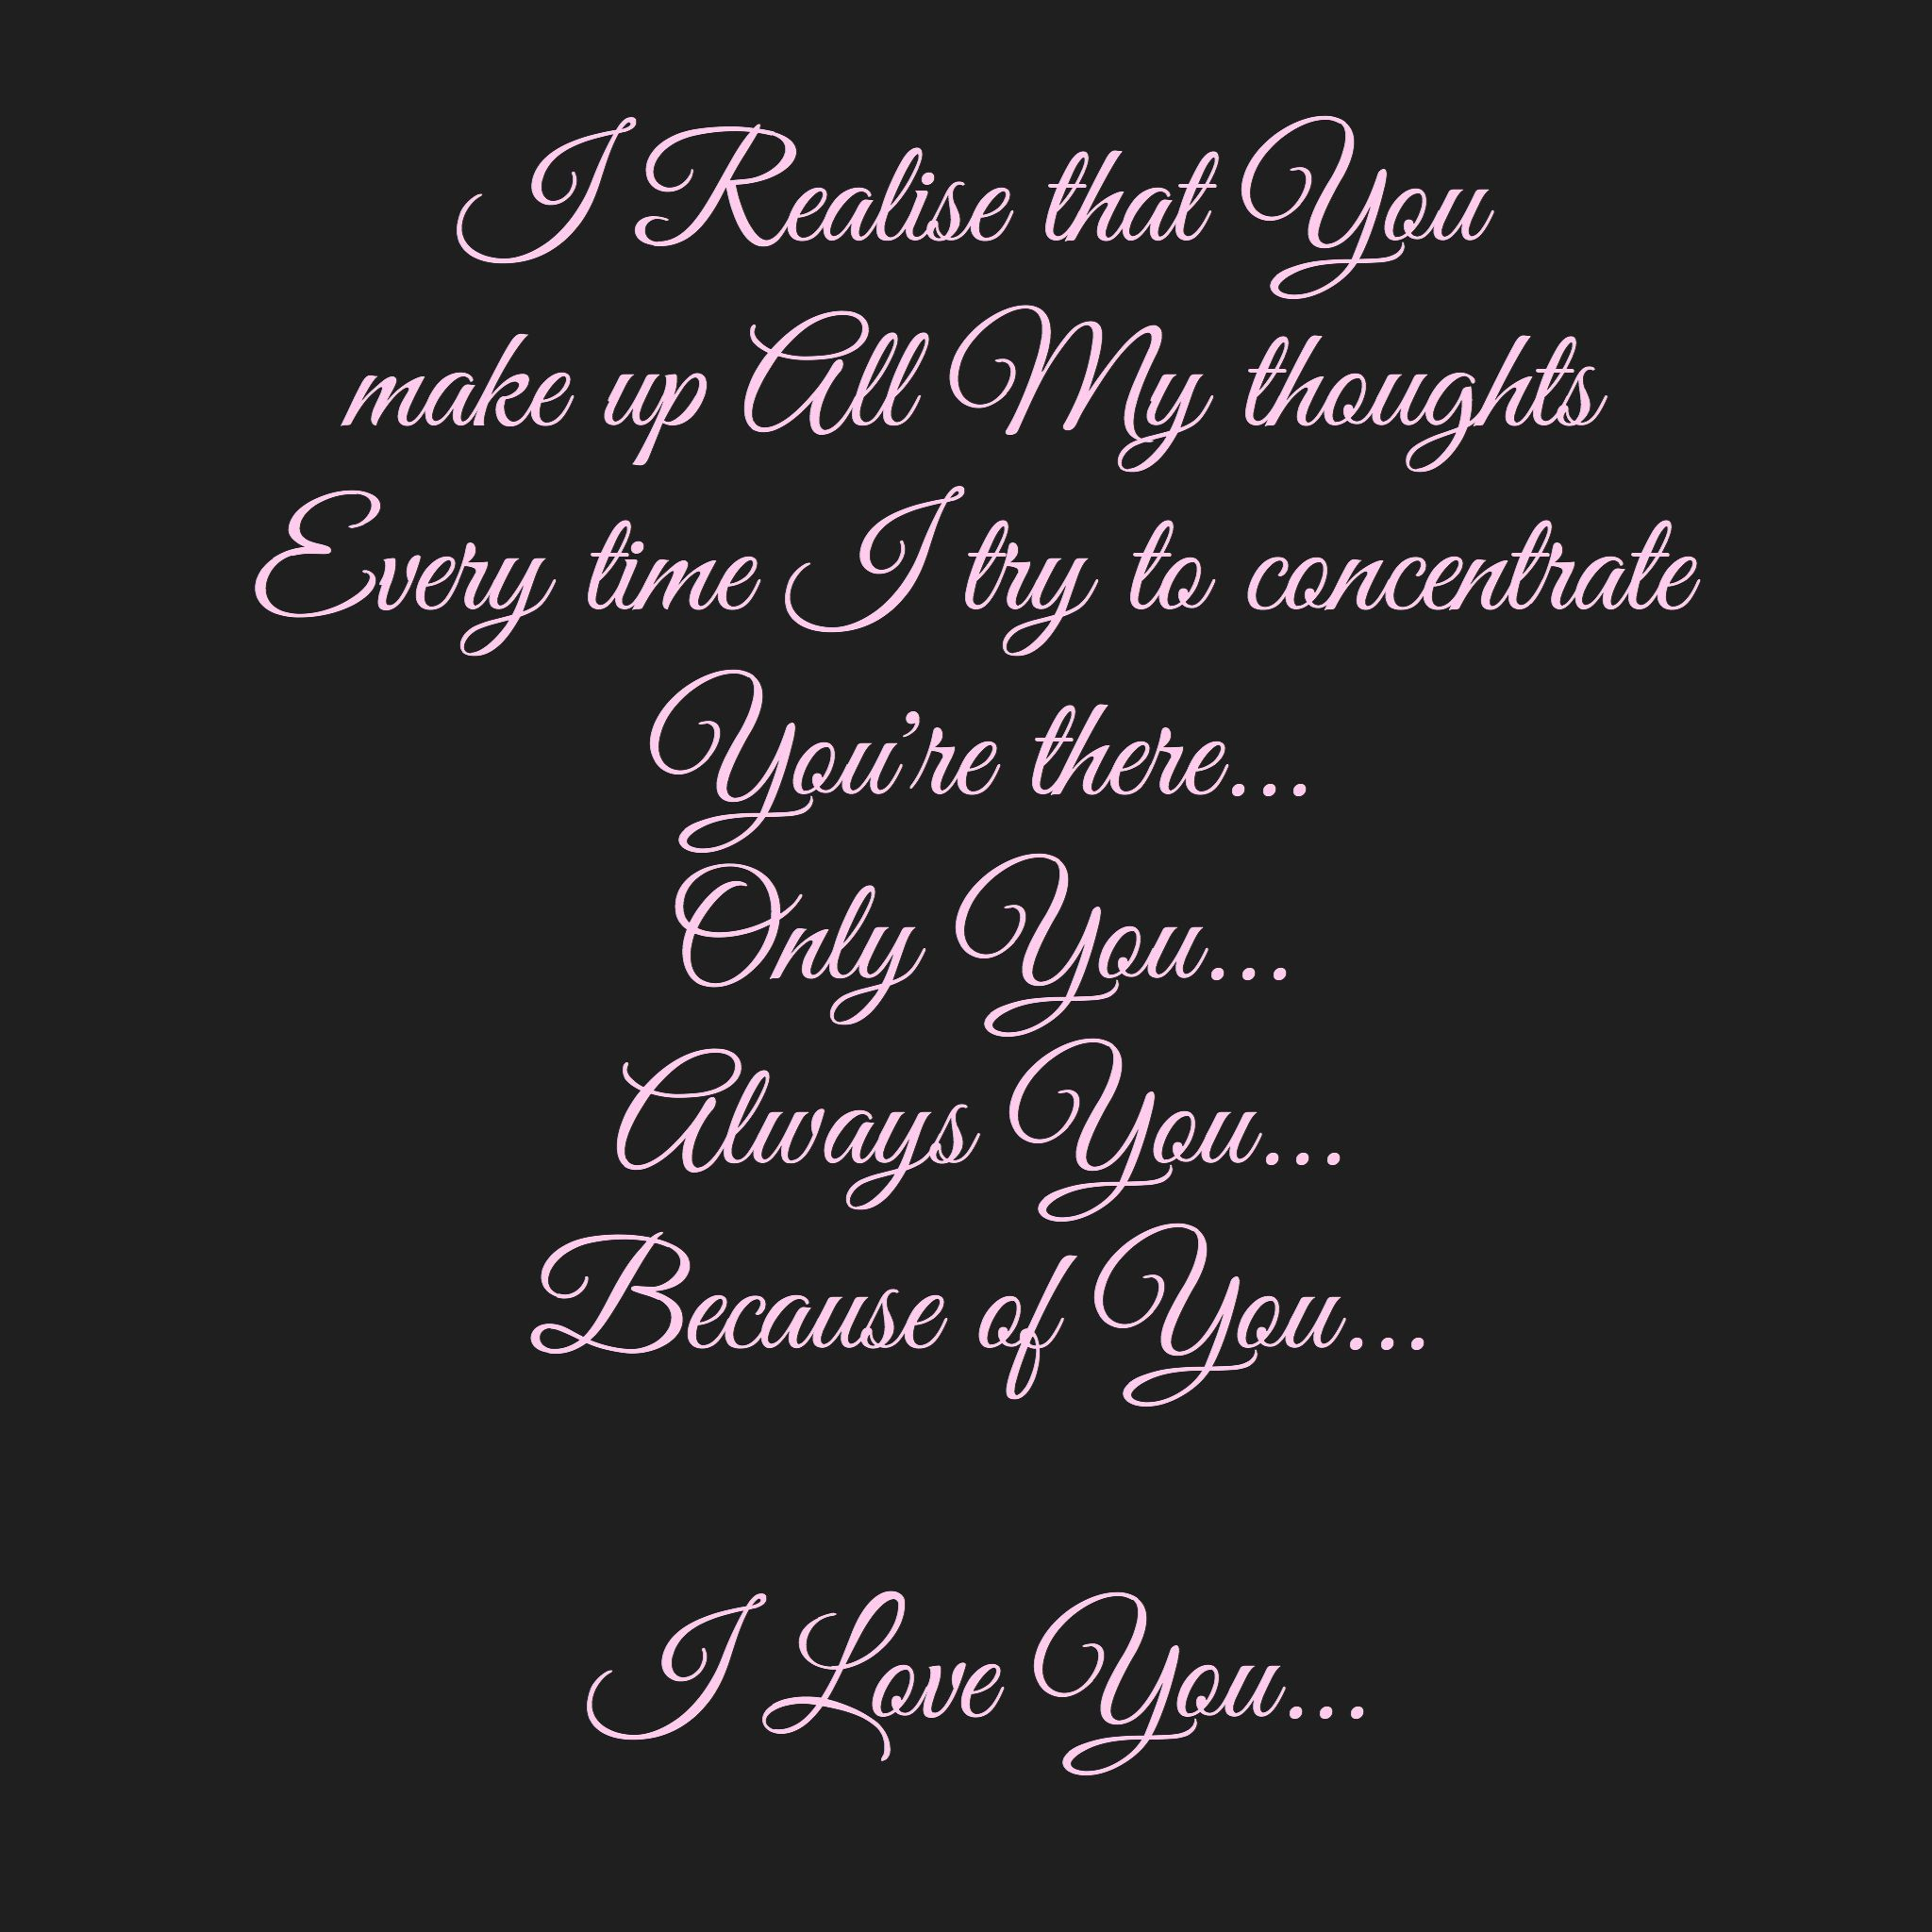 I Love You Because Quotes Only Youalways Youbecause Of Youi Love You You're